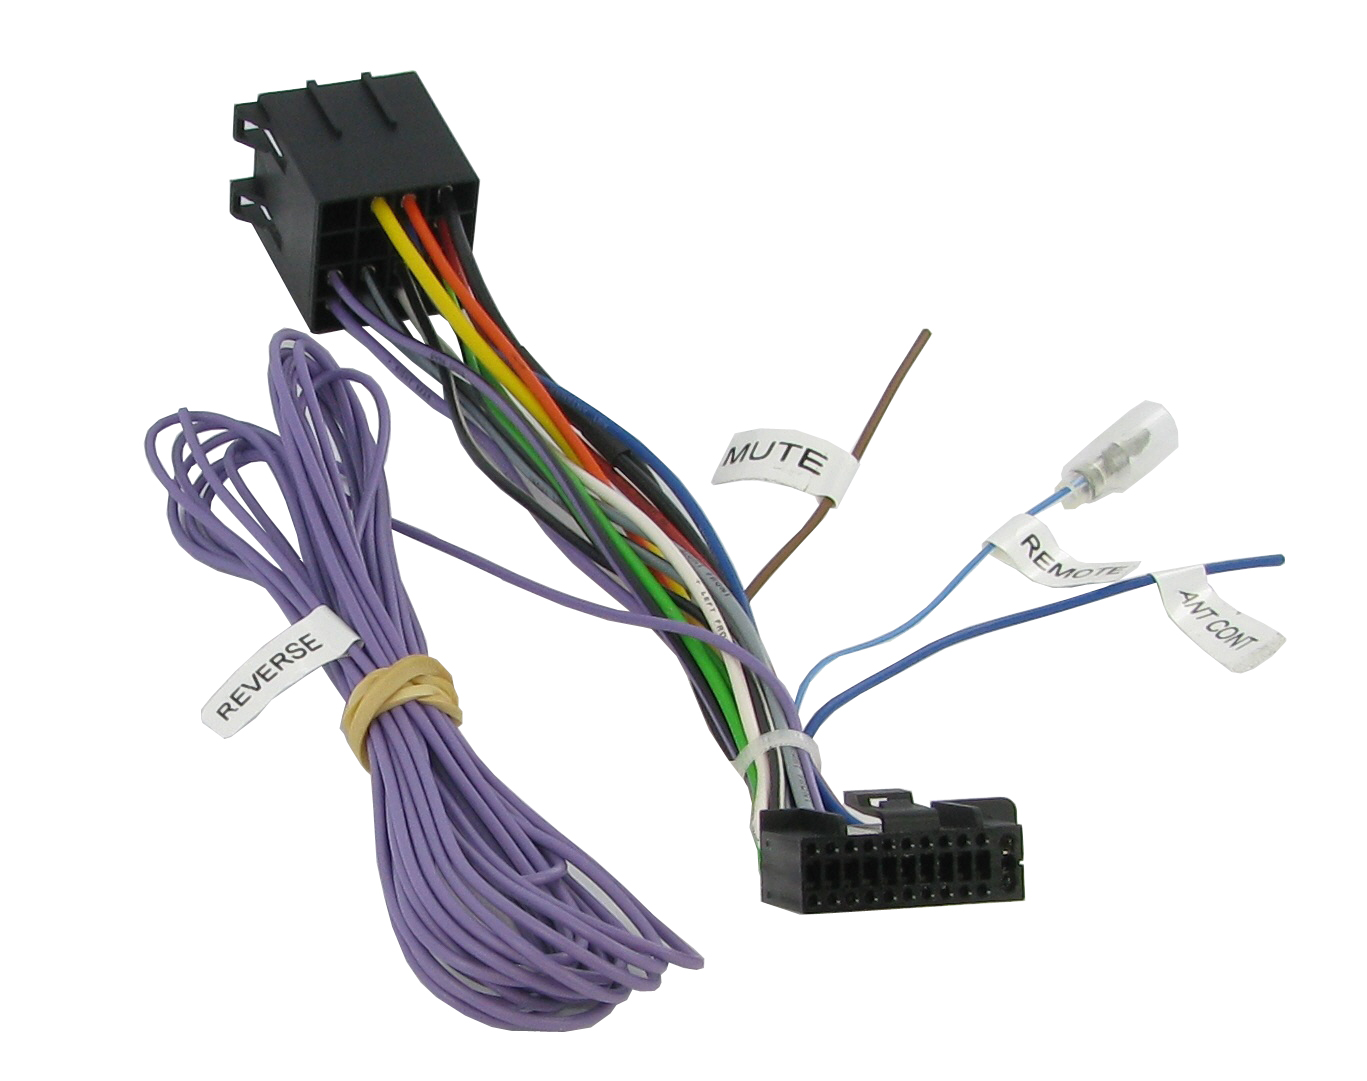 kenwood dnx5120 wiring diagram ford tractor starter solenoid dnx and some ddx head unit power speaker